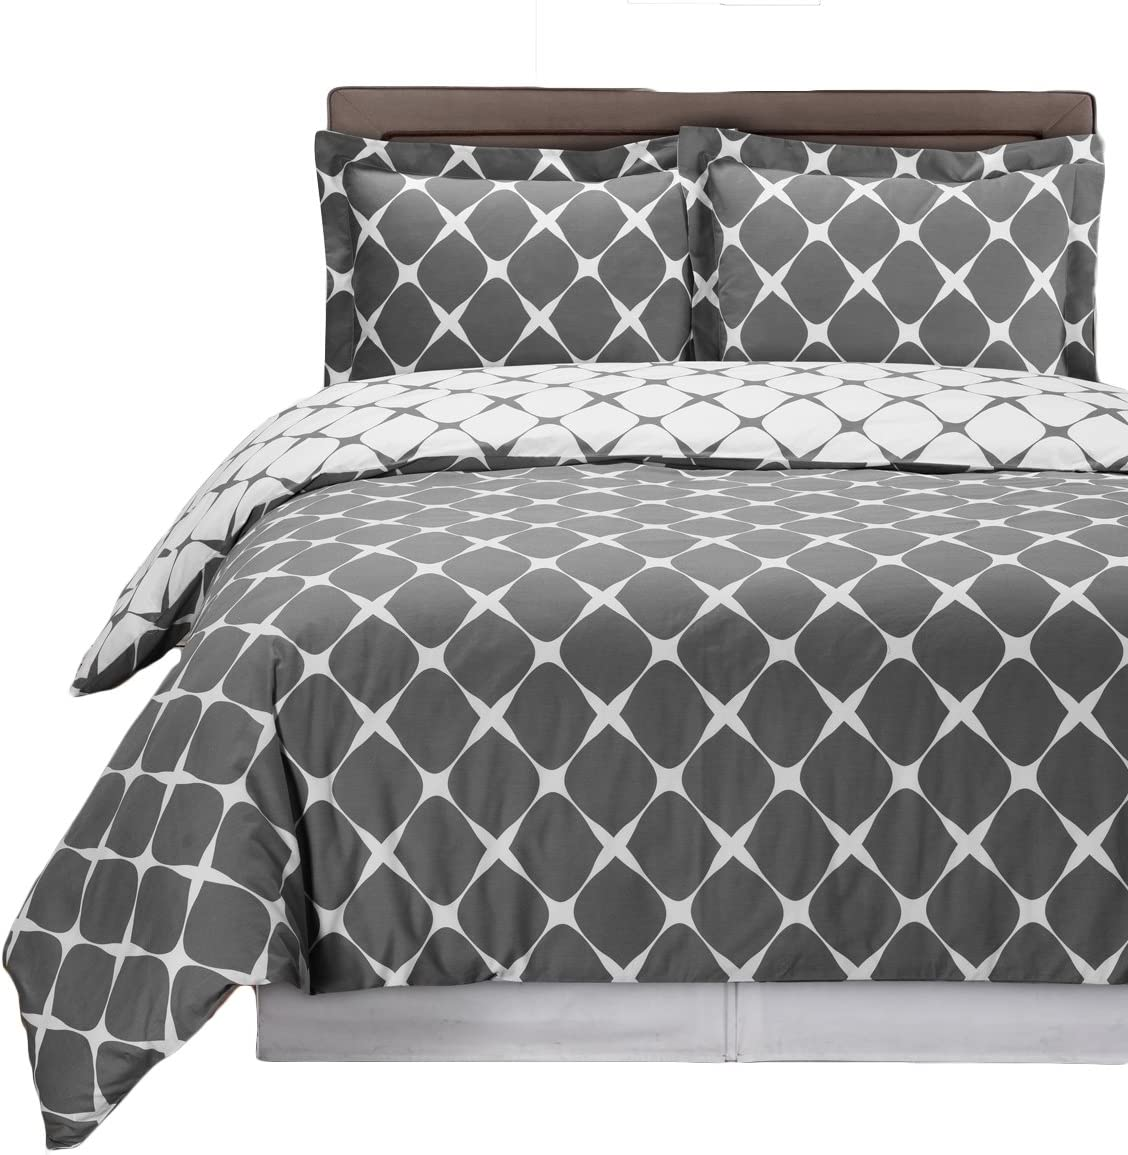 8PC Bloomingdale Grey and White California Bed Japan Maker New in Ba Size King a NEW before selling ☆